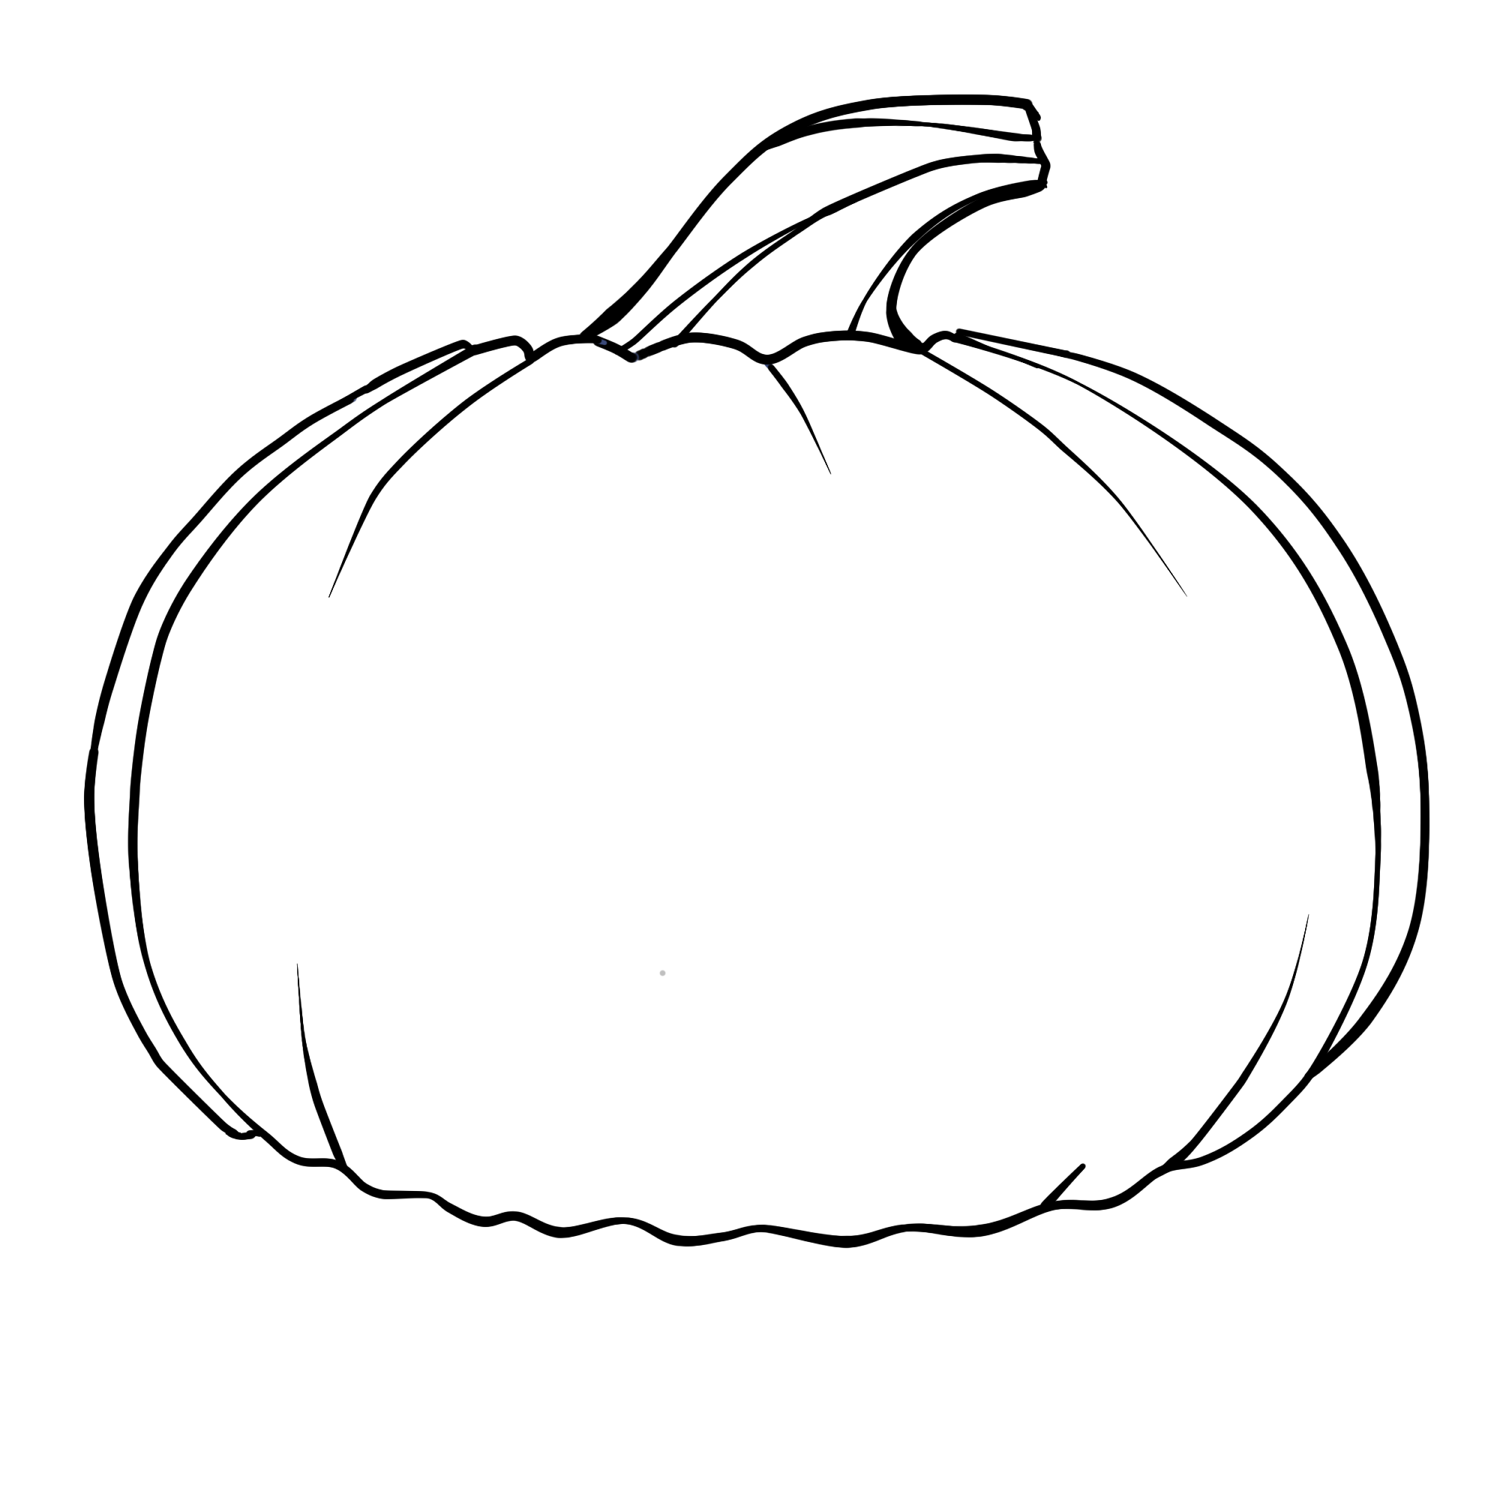 coloring book pumpkin pumpkins coloring pages to celebrate thanksgiving learn pumpkin coloring book